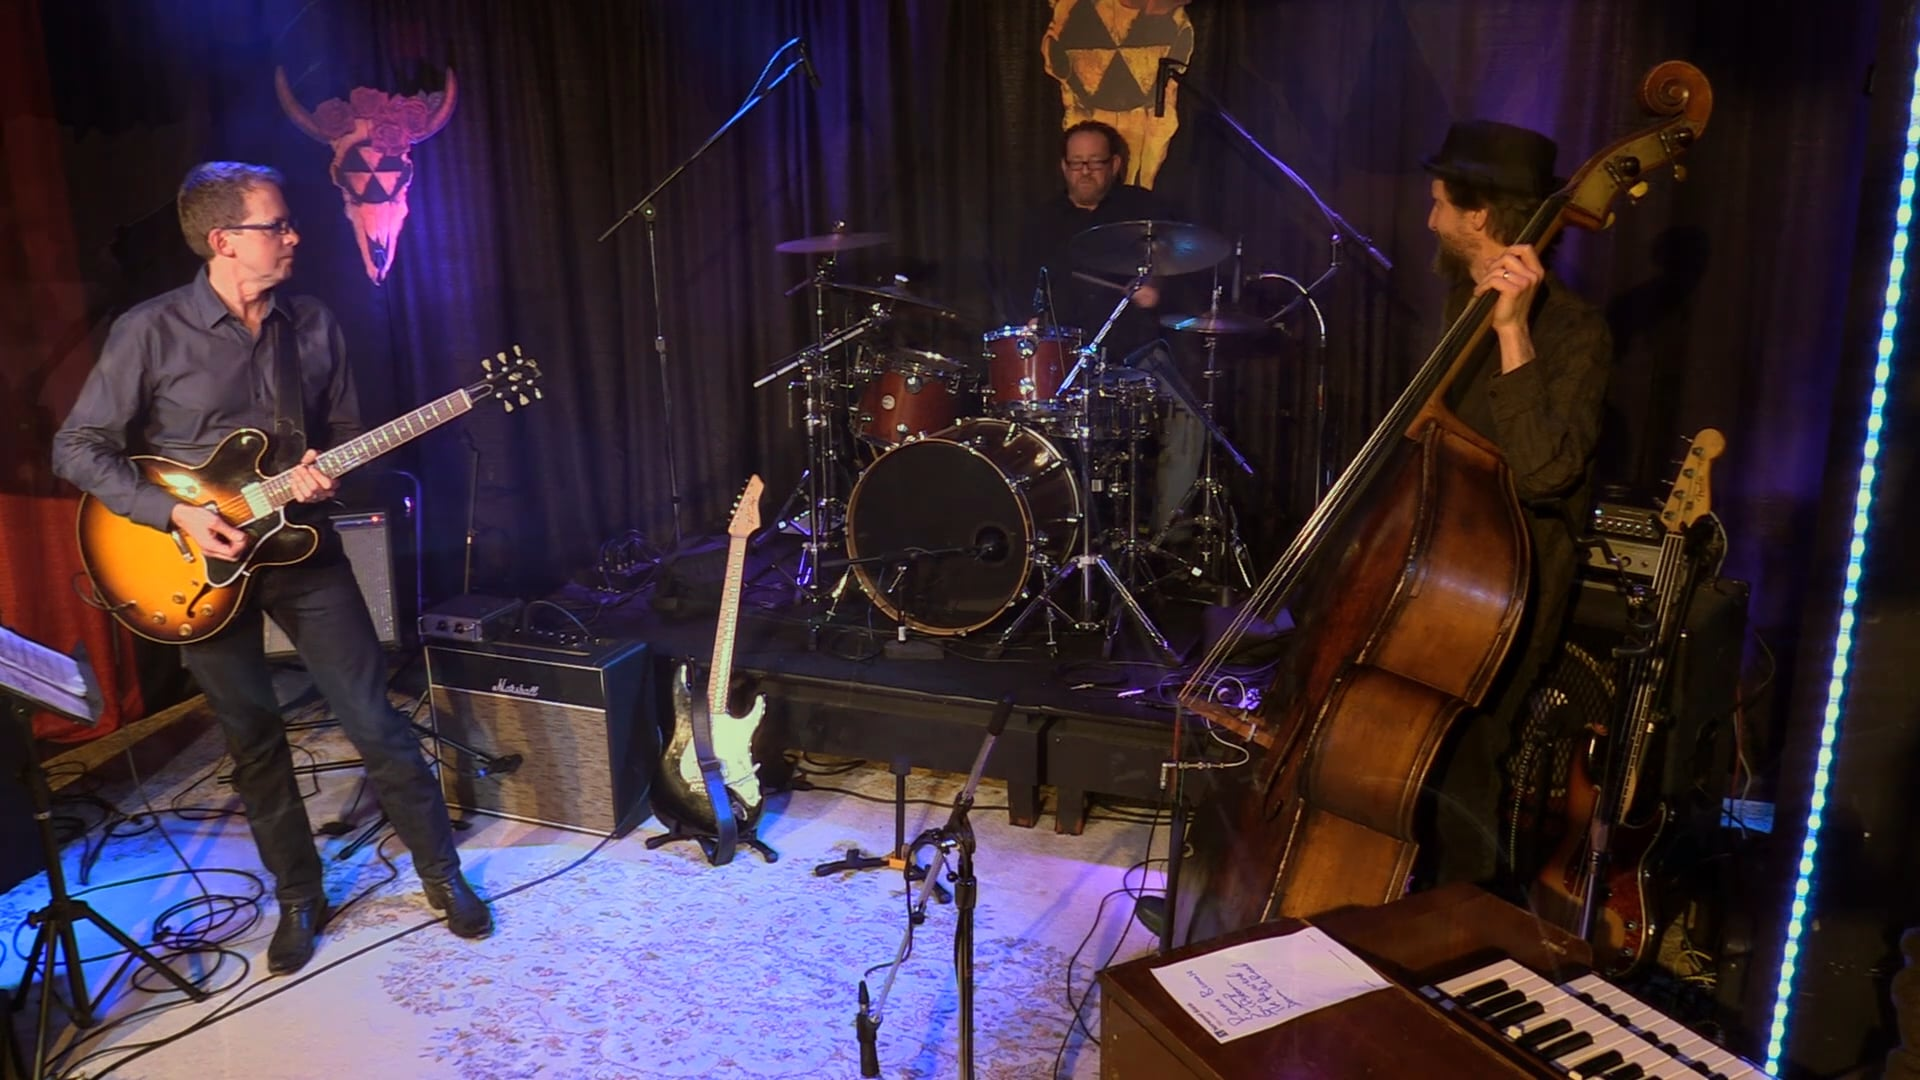 'Ronnie's Bonnie' - The Jesse Williams Quartet - from The Extended Play Sessions